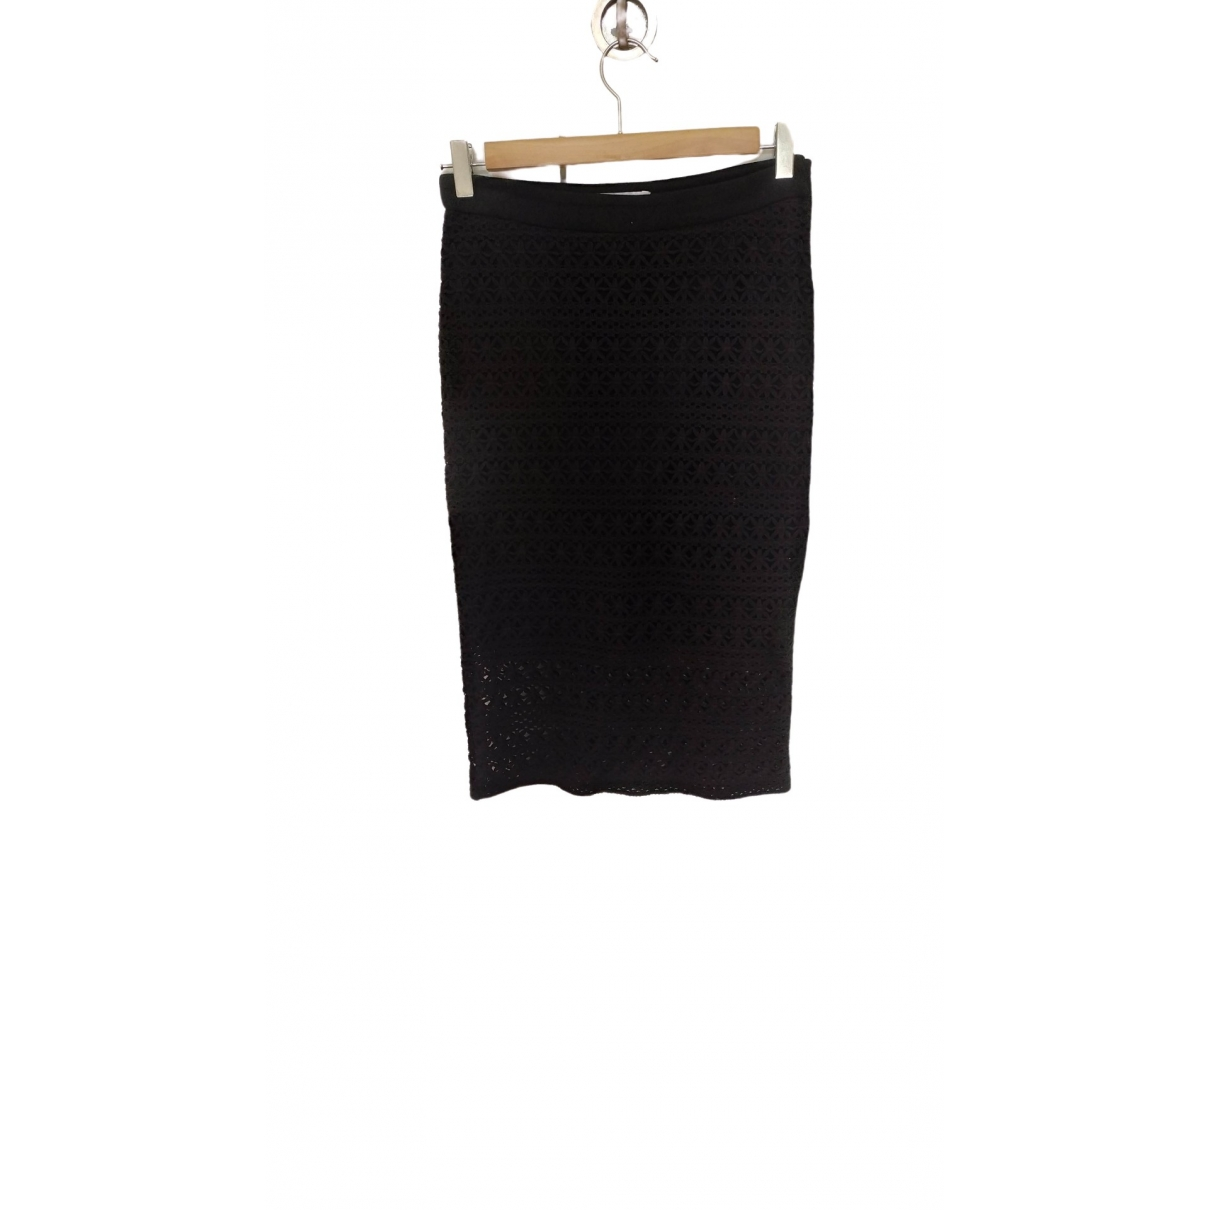 Gat Rimon \N Black Cotton skirt for Women 34 FR